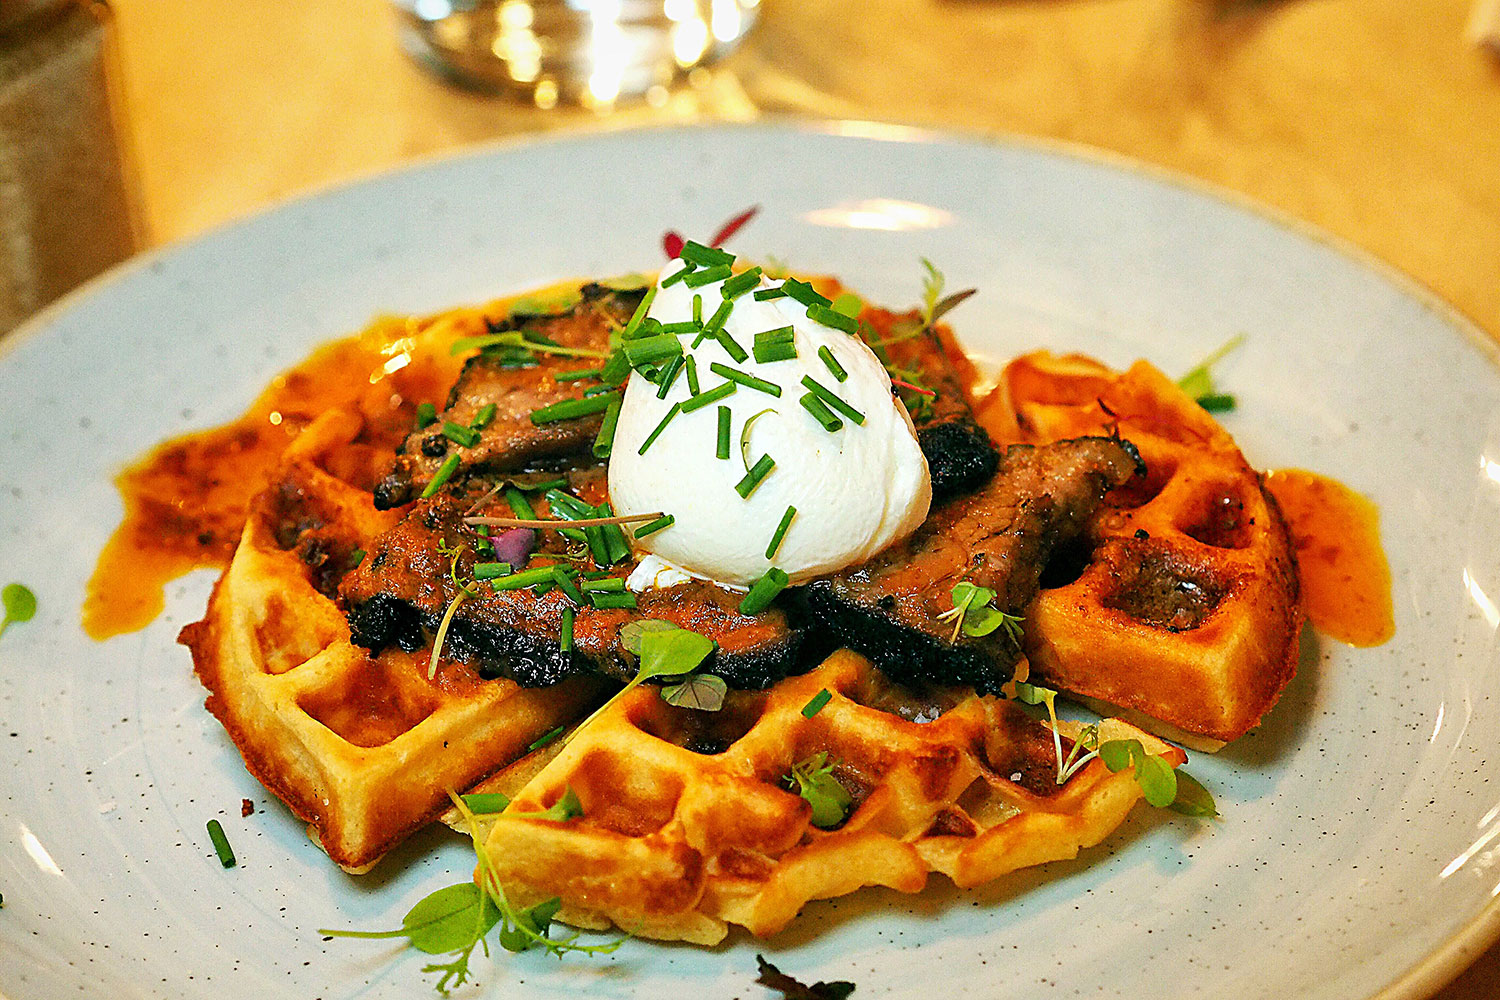 Beef Brisket with Waffles, Smoked Chilli Butter, Kansas City Shuffle: The Rocks